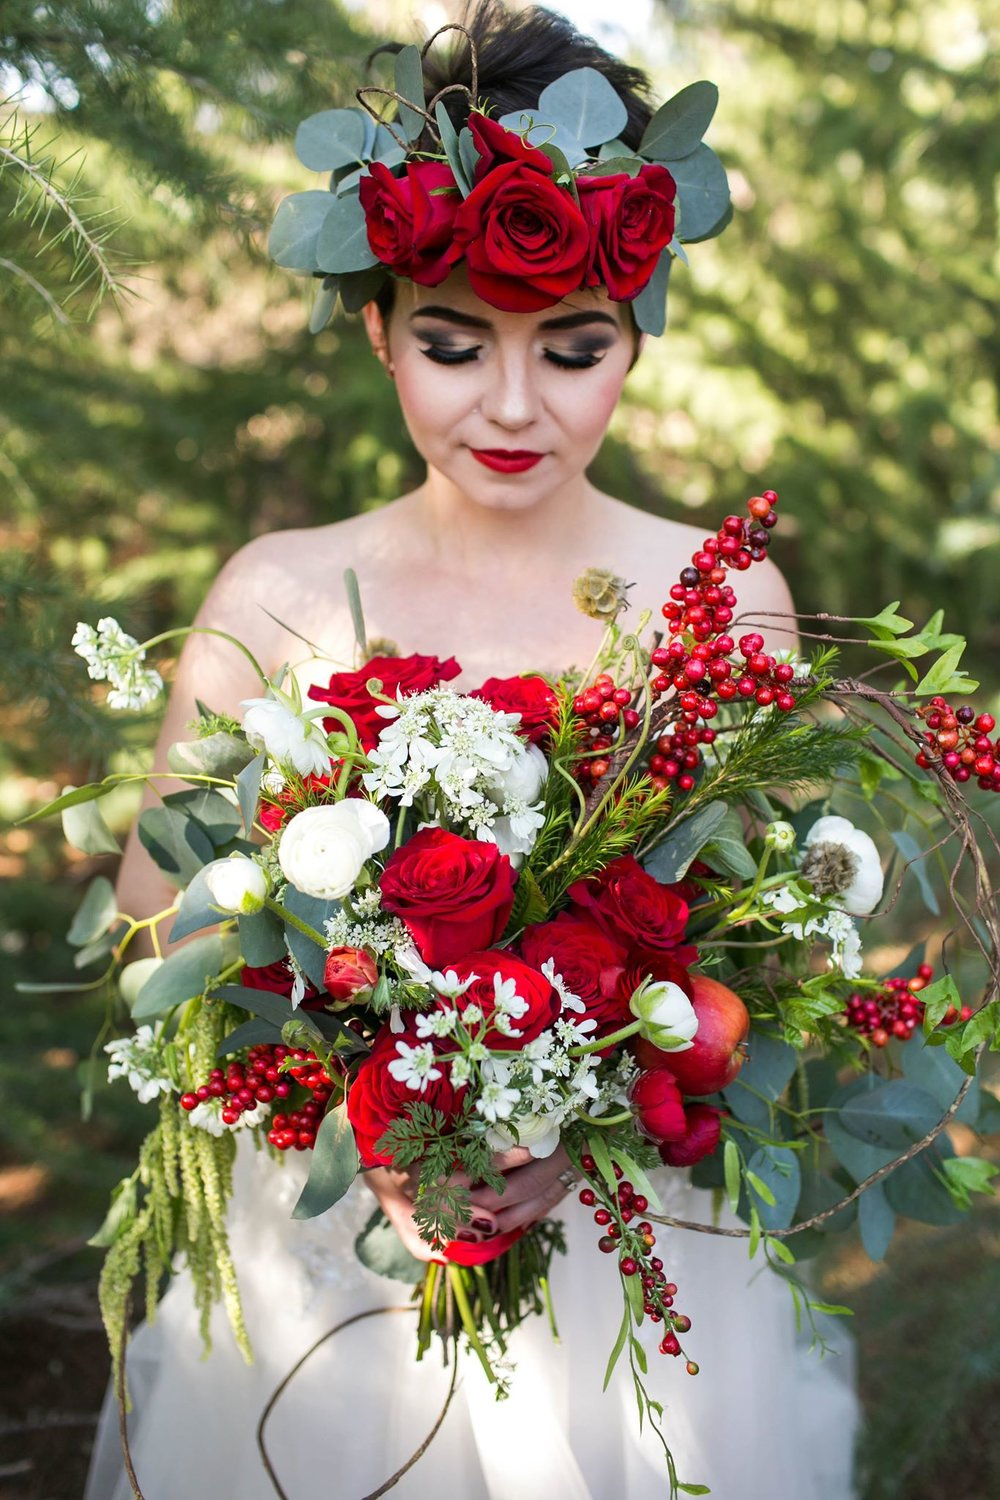 Smitten_bridal_apple_bouquet_hesperia.jpg